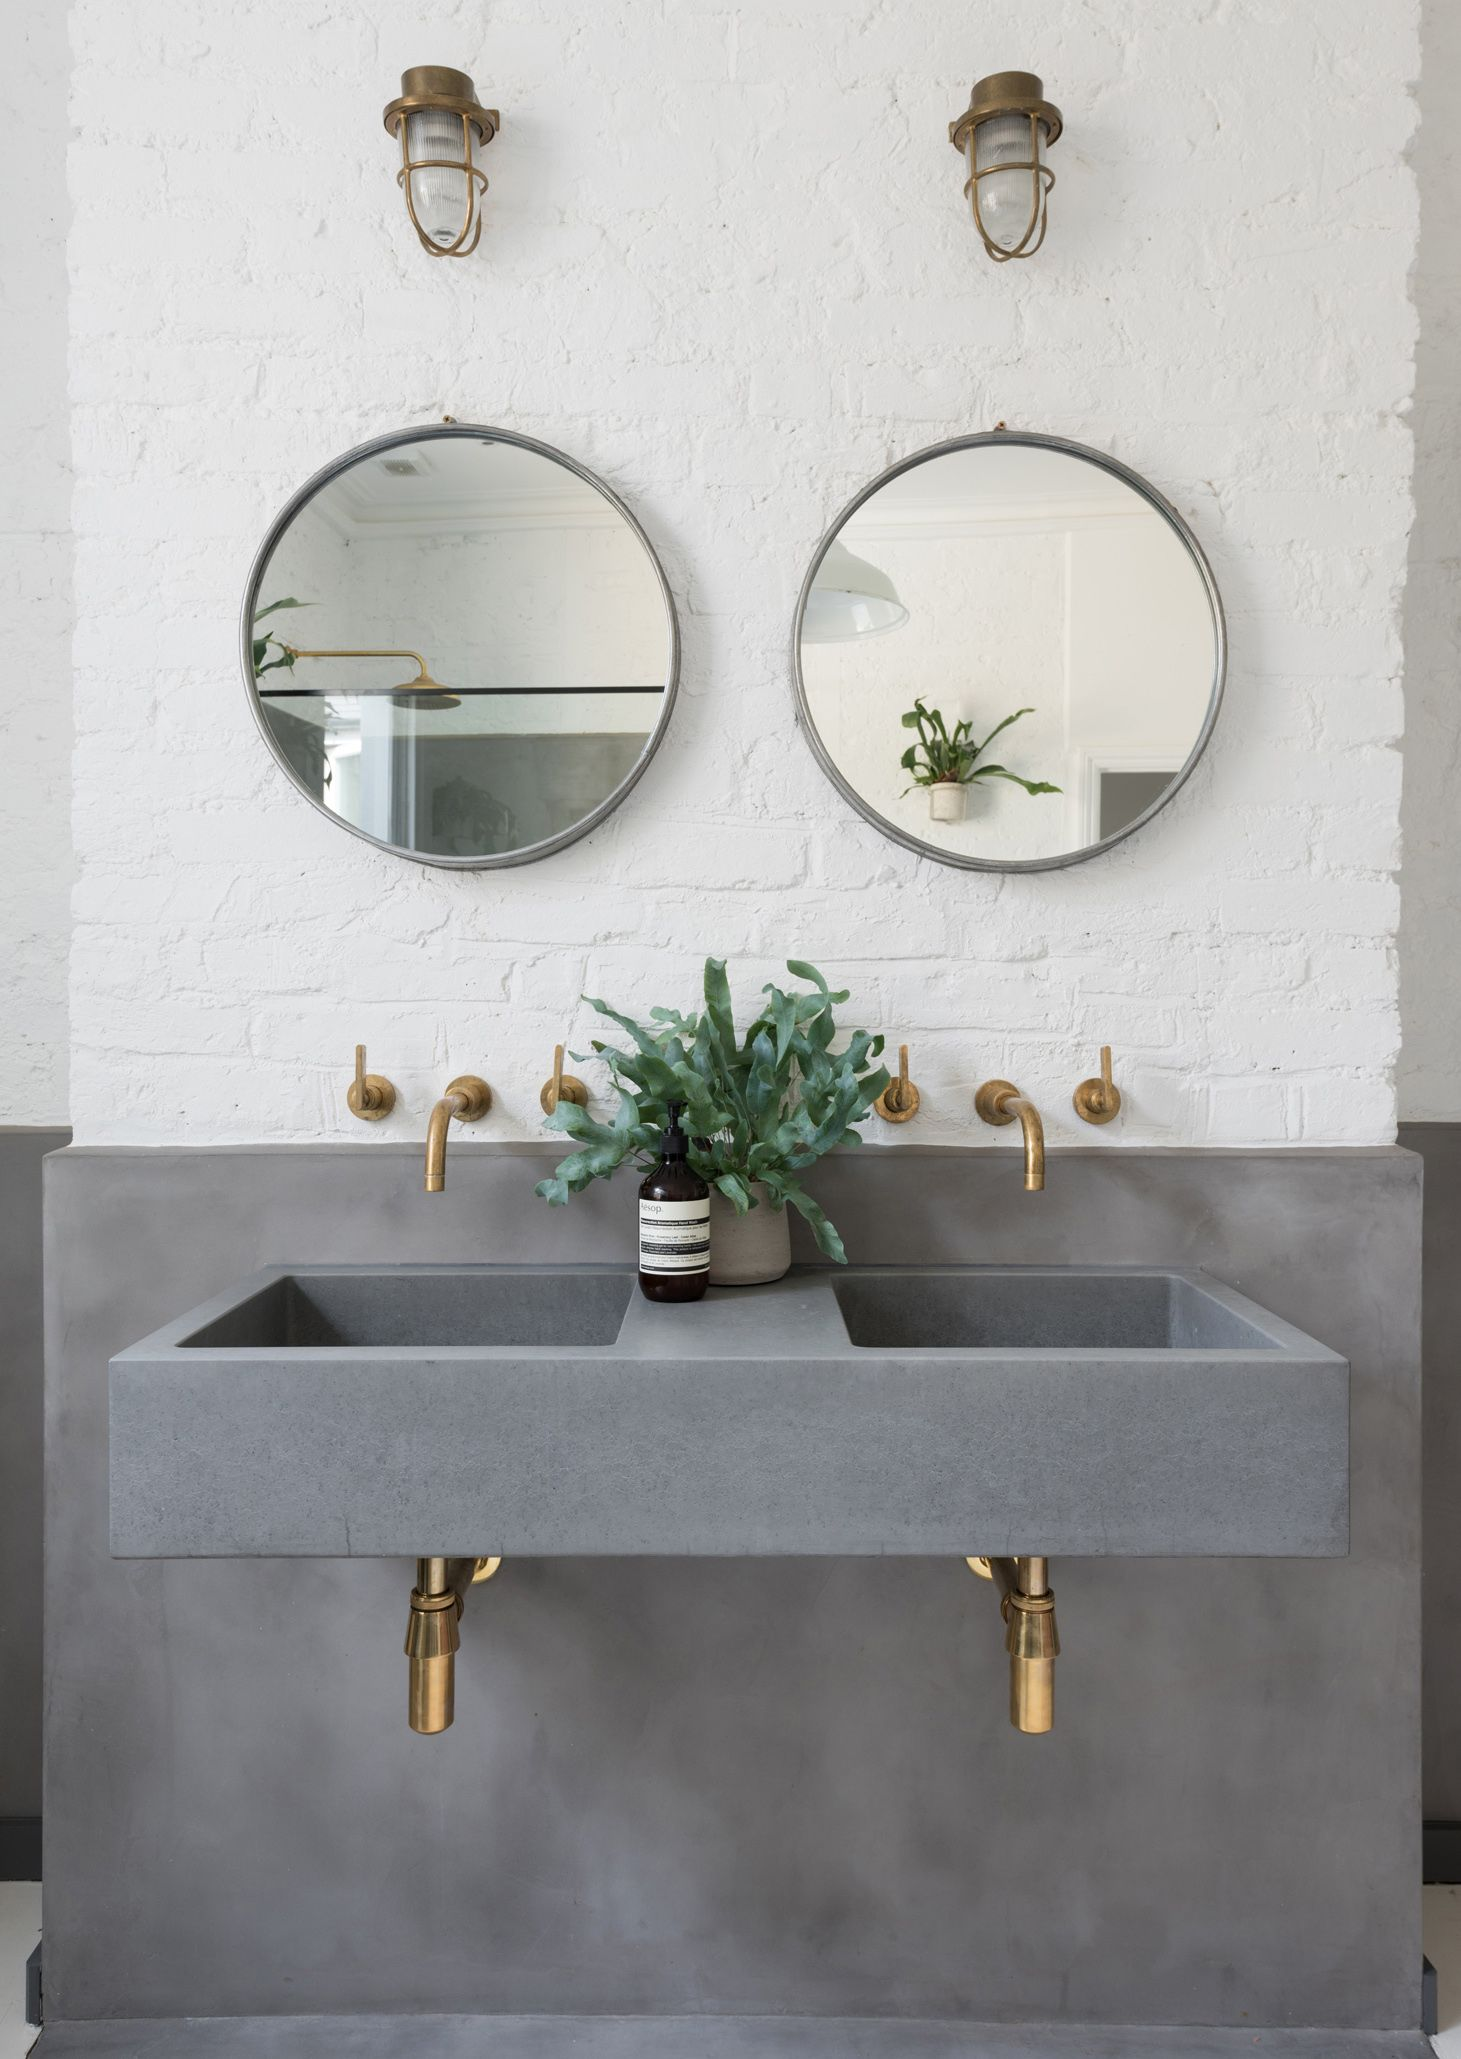 Master Bathroom Design By All Nxthing Which Features The